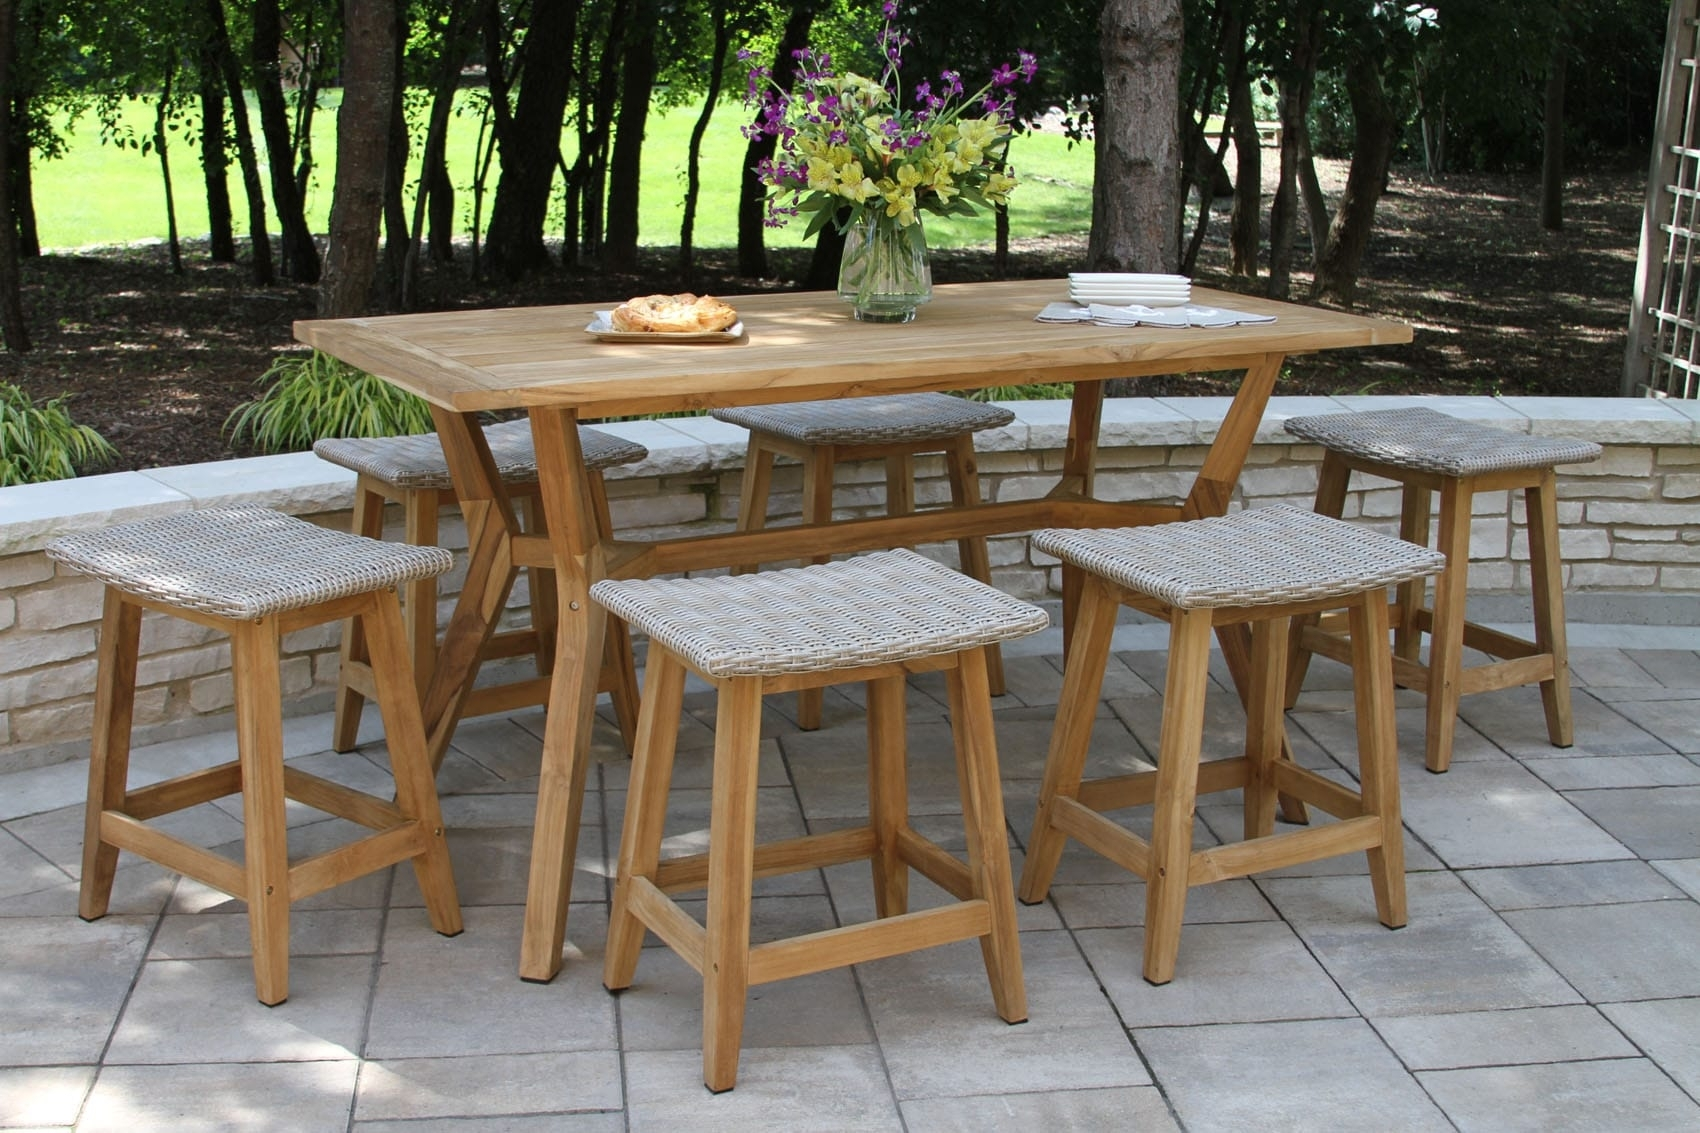 Teak & Wicker Furniture Collection From Outdoor Interiors Regarding Most Recent Outdoor Brasilia Teak High Dining Tables (View 4 of 20)